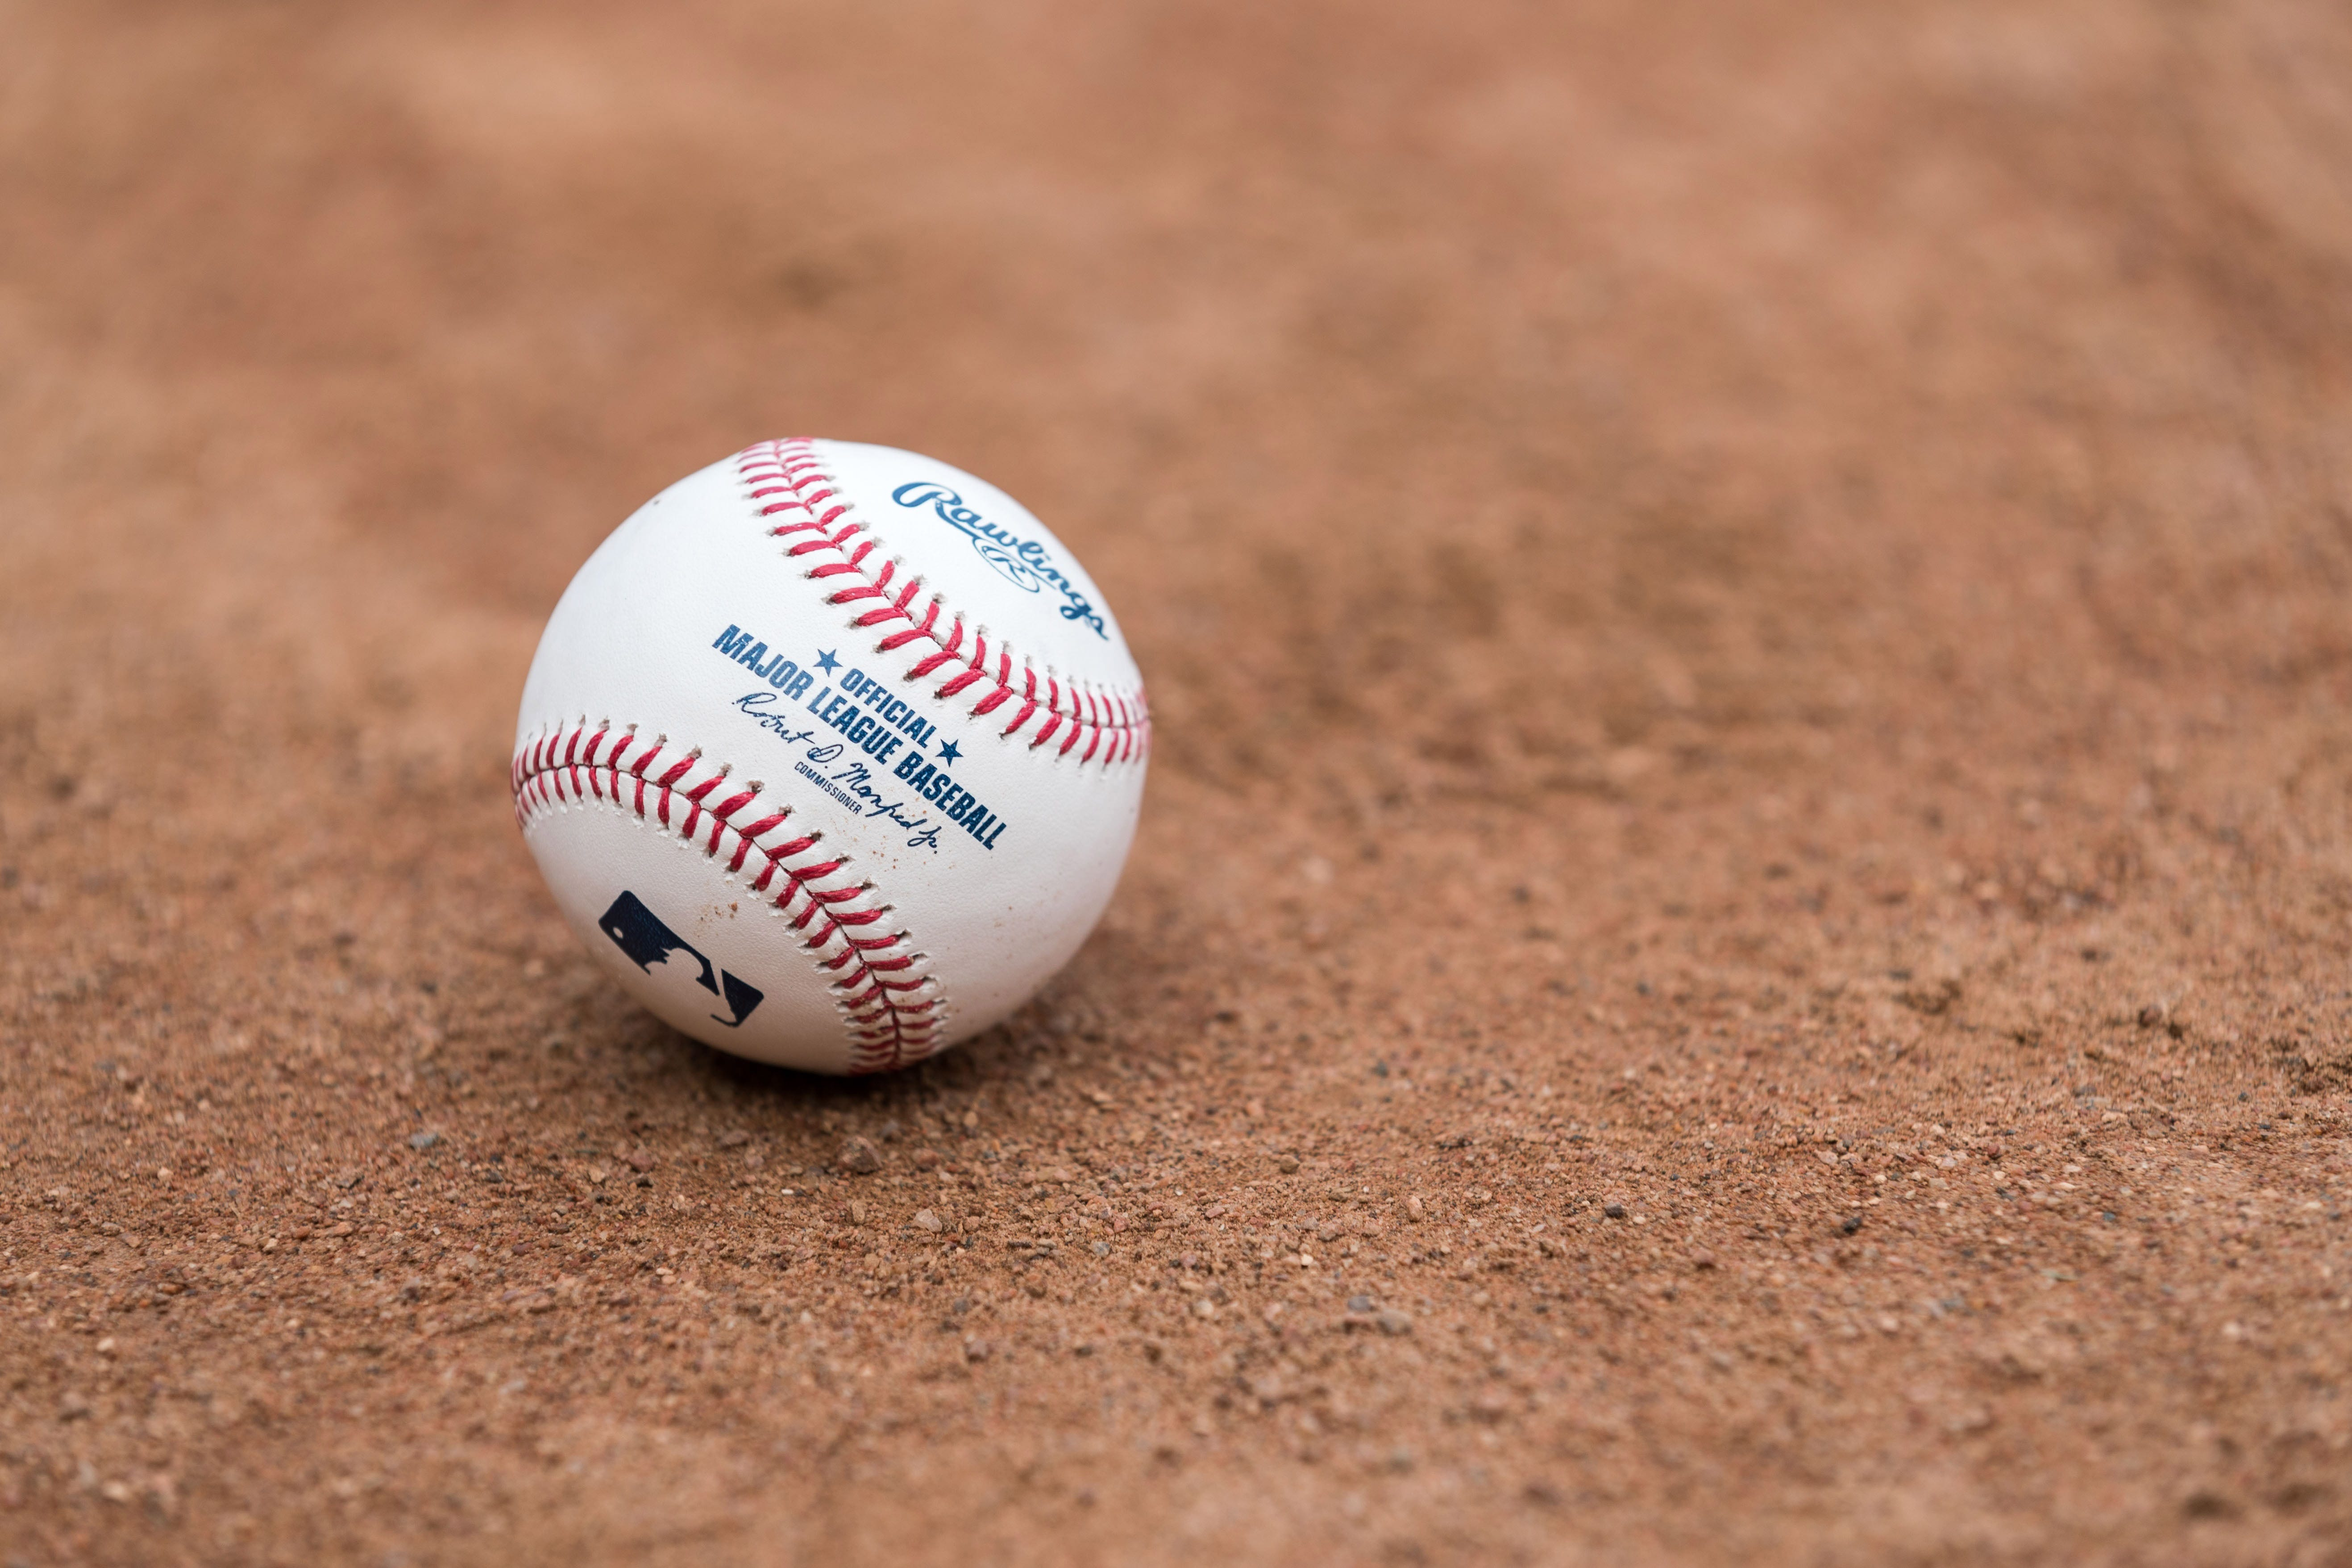 MLB informs teams of increased crackdown on pitchers using foreign substances